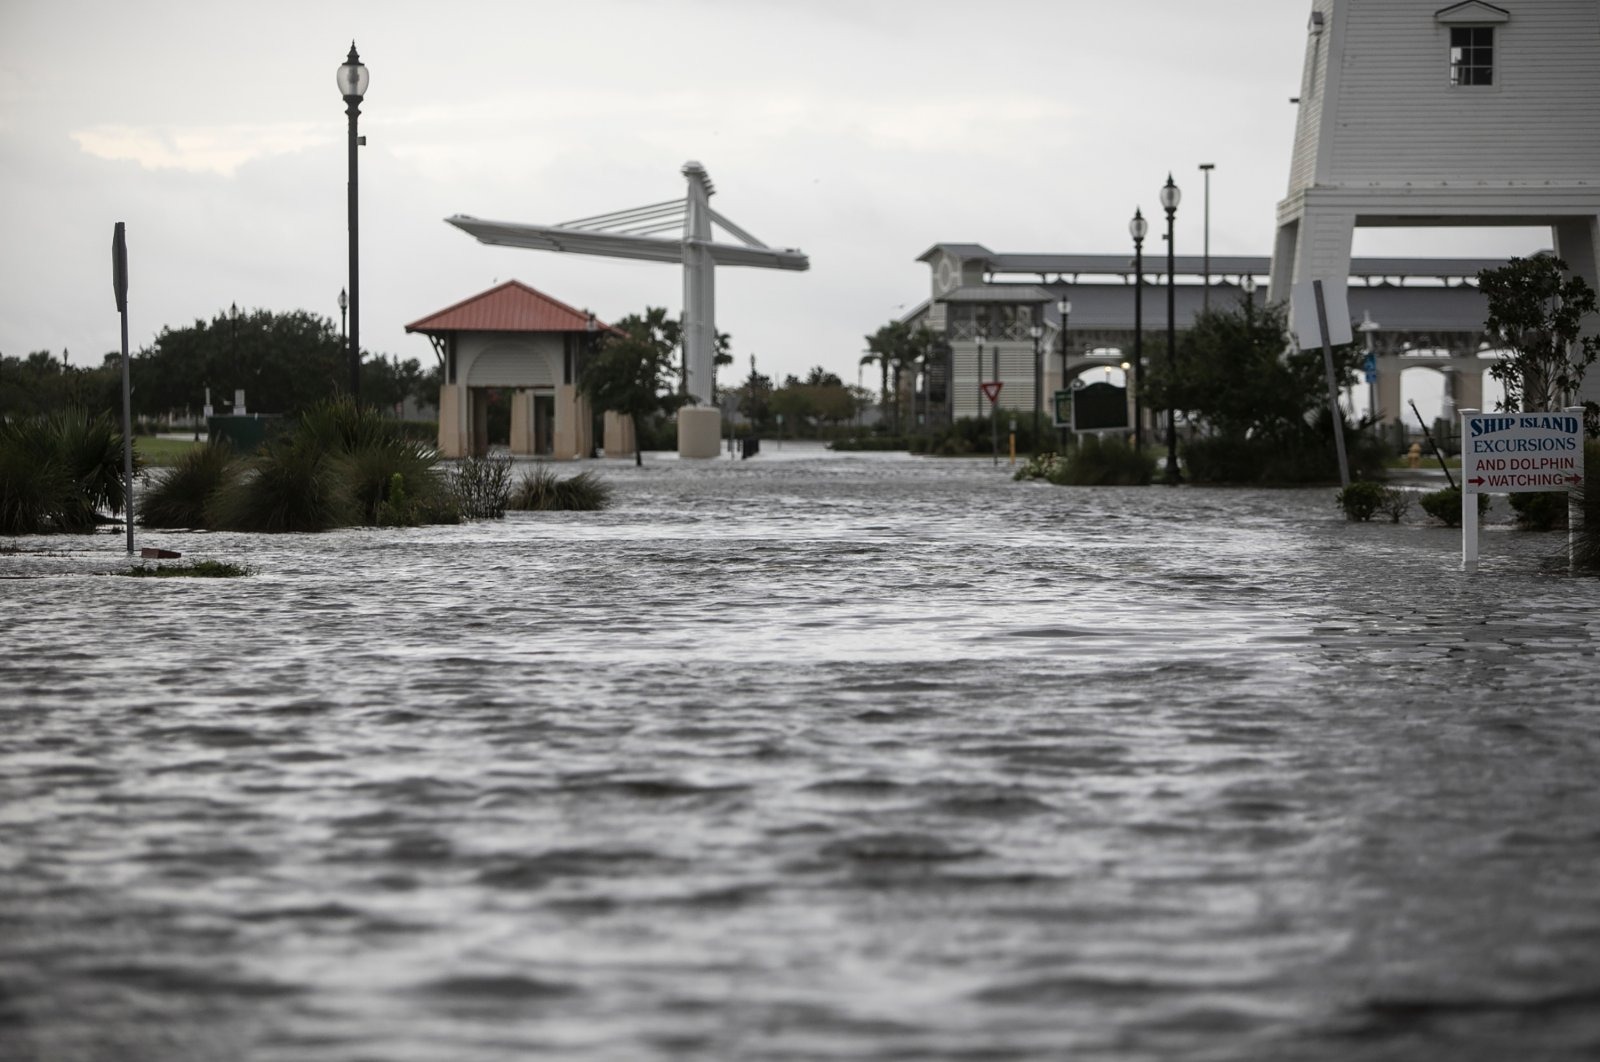 Jones Park in Gulfport, Miss., is flooded early Sunday, Aug. 29, 2021, from Hurricane Ida's storm surge ahead of the storm's landfall. (Justin Mitchell/The Sun Herald via AP)